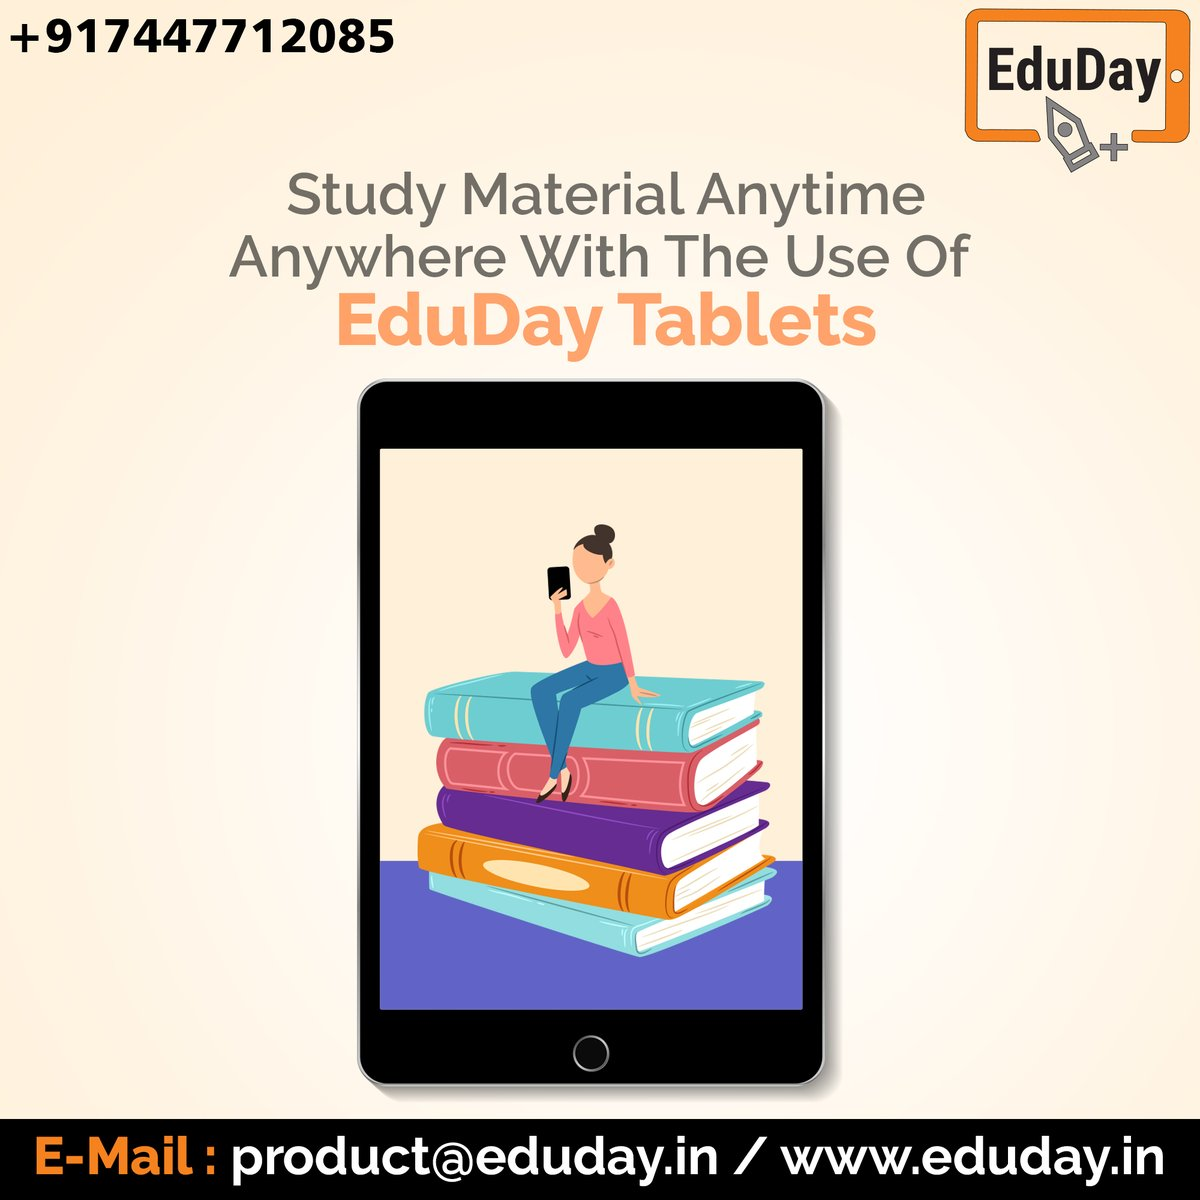 EduDay Educational Tablets especially designed for competitive exams such as JEE, NEET, UPSC, CA.etc  For more information please feel free to contact on: - Ph : +91 7447712085 E-Mail: product@eduday.in http://www.eduday.in  #eduday #edudayindia #pune #india #tab #tabletspic.twitter.com/epIhziEOsw